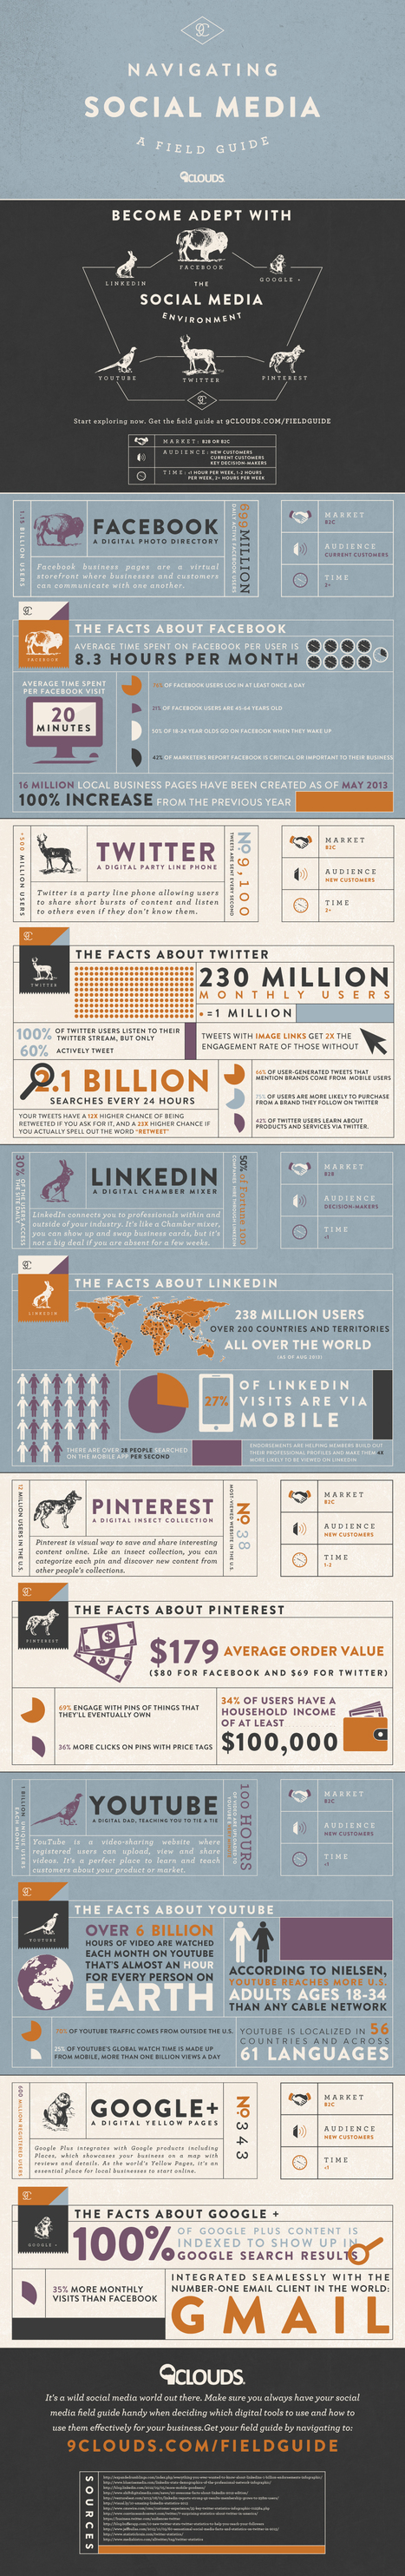 An Infographic Field Guide to Navigating Social Media | Educational Use of Social Media | Scoop.it